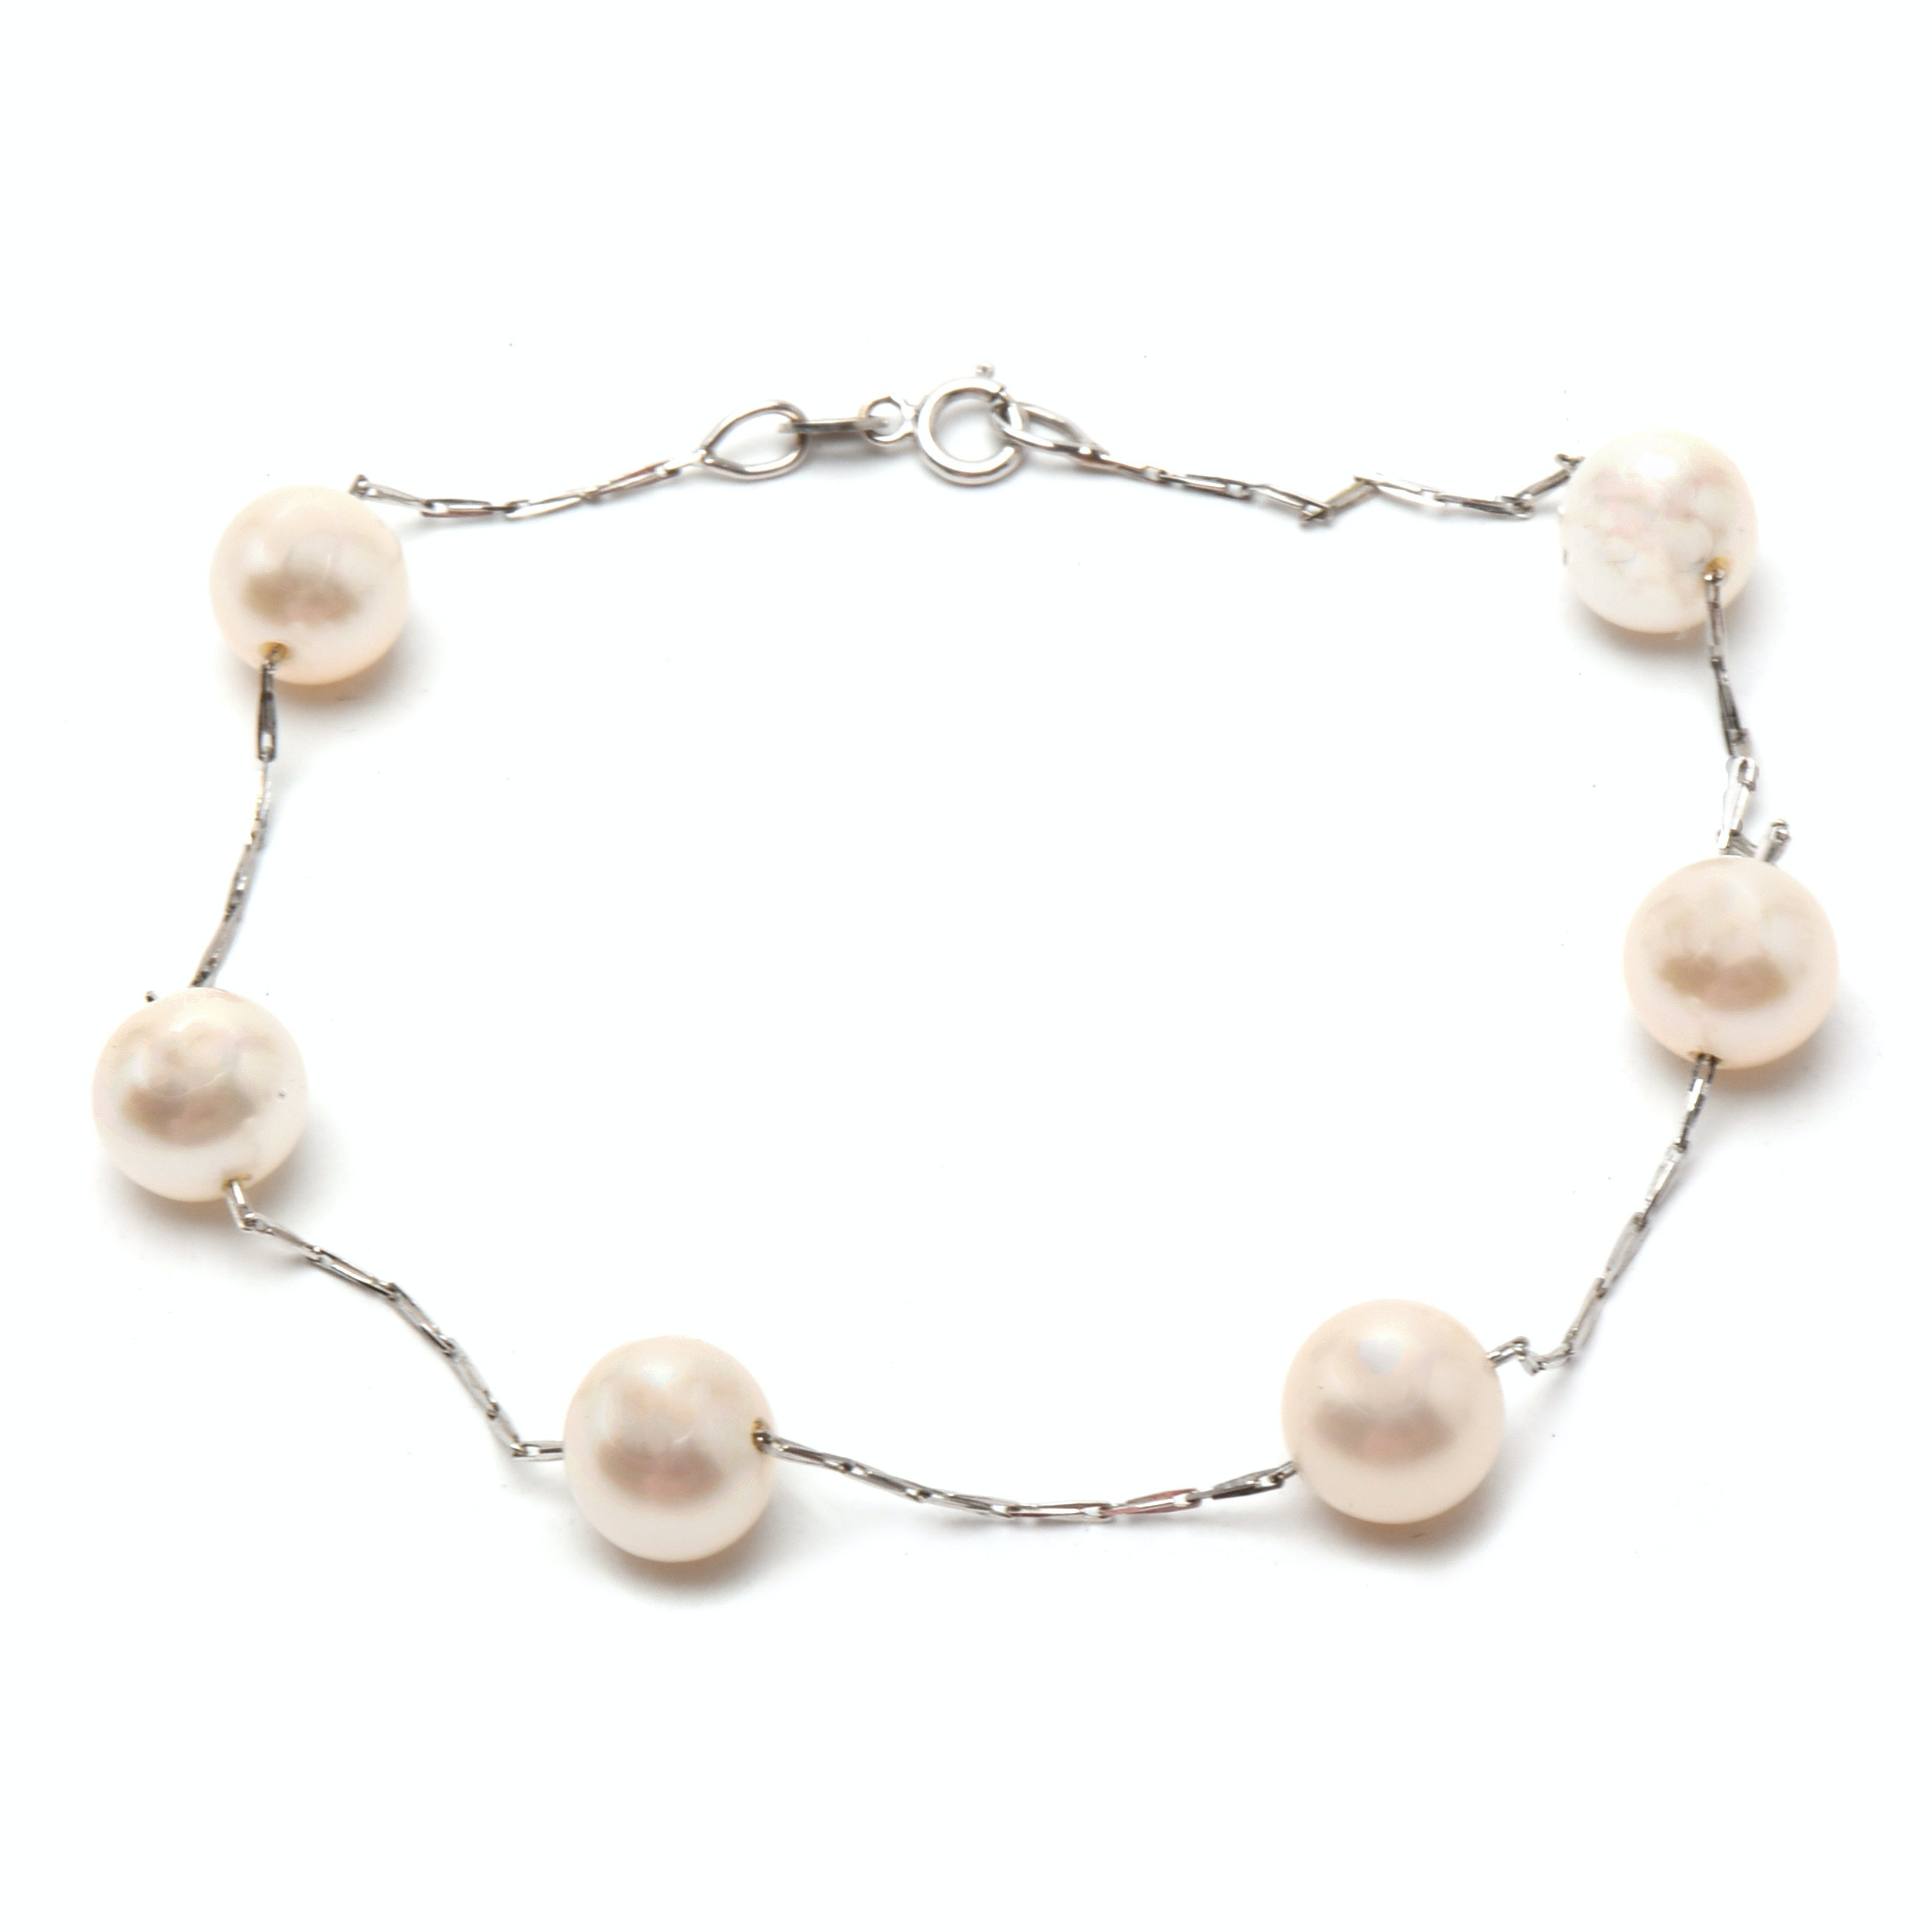 Italian 18K White Gold Cultured Pearl Bracelet